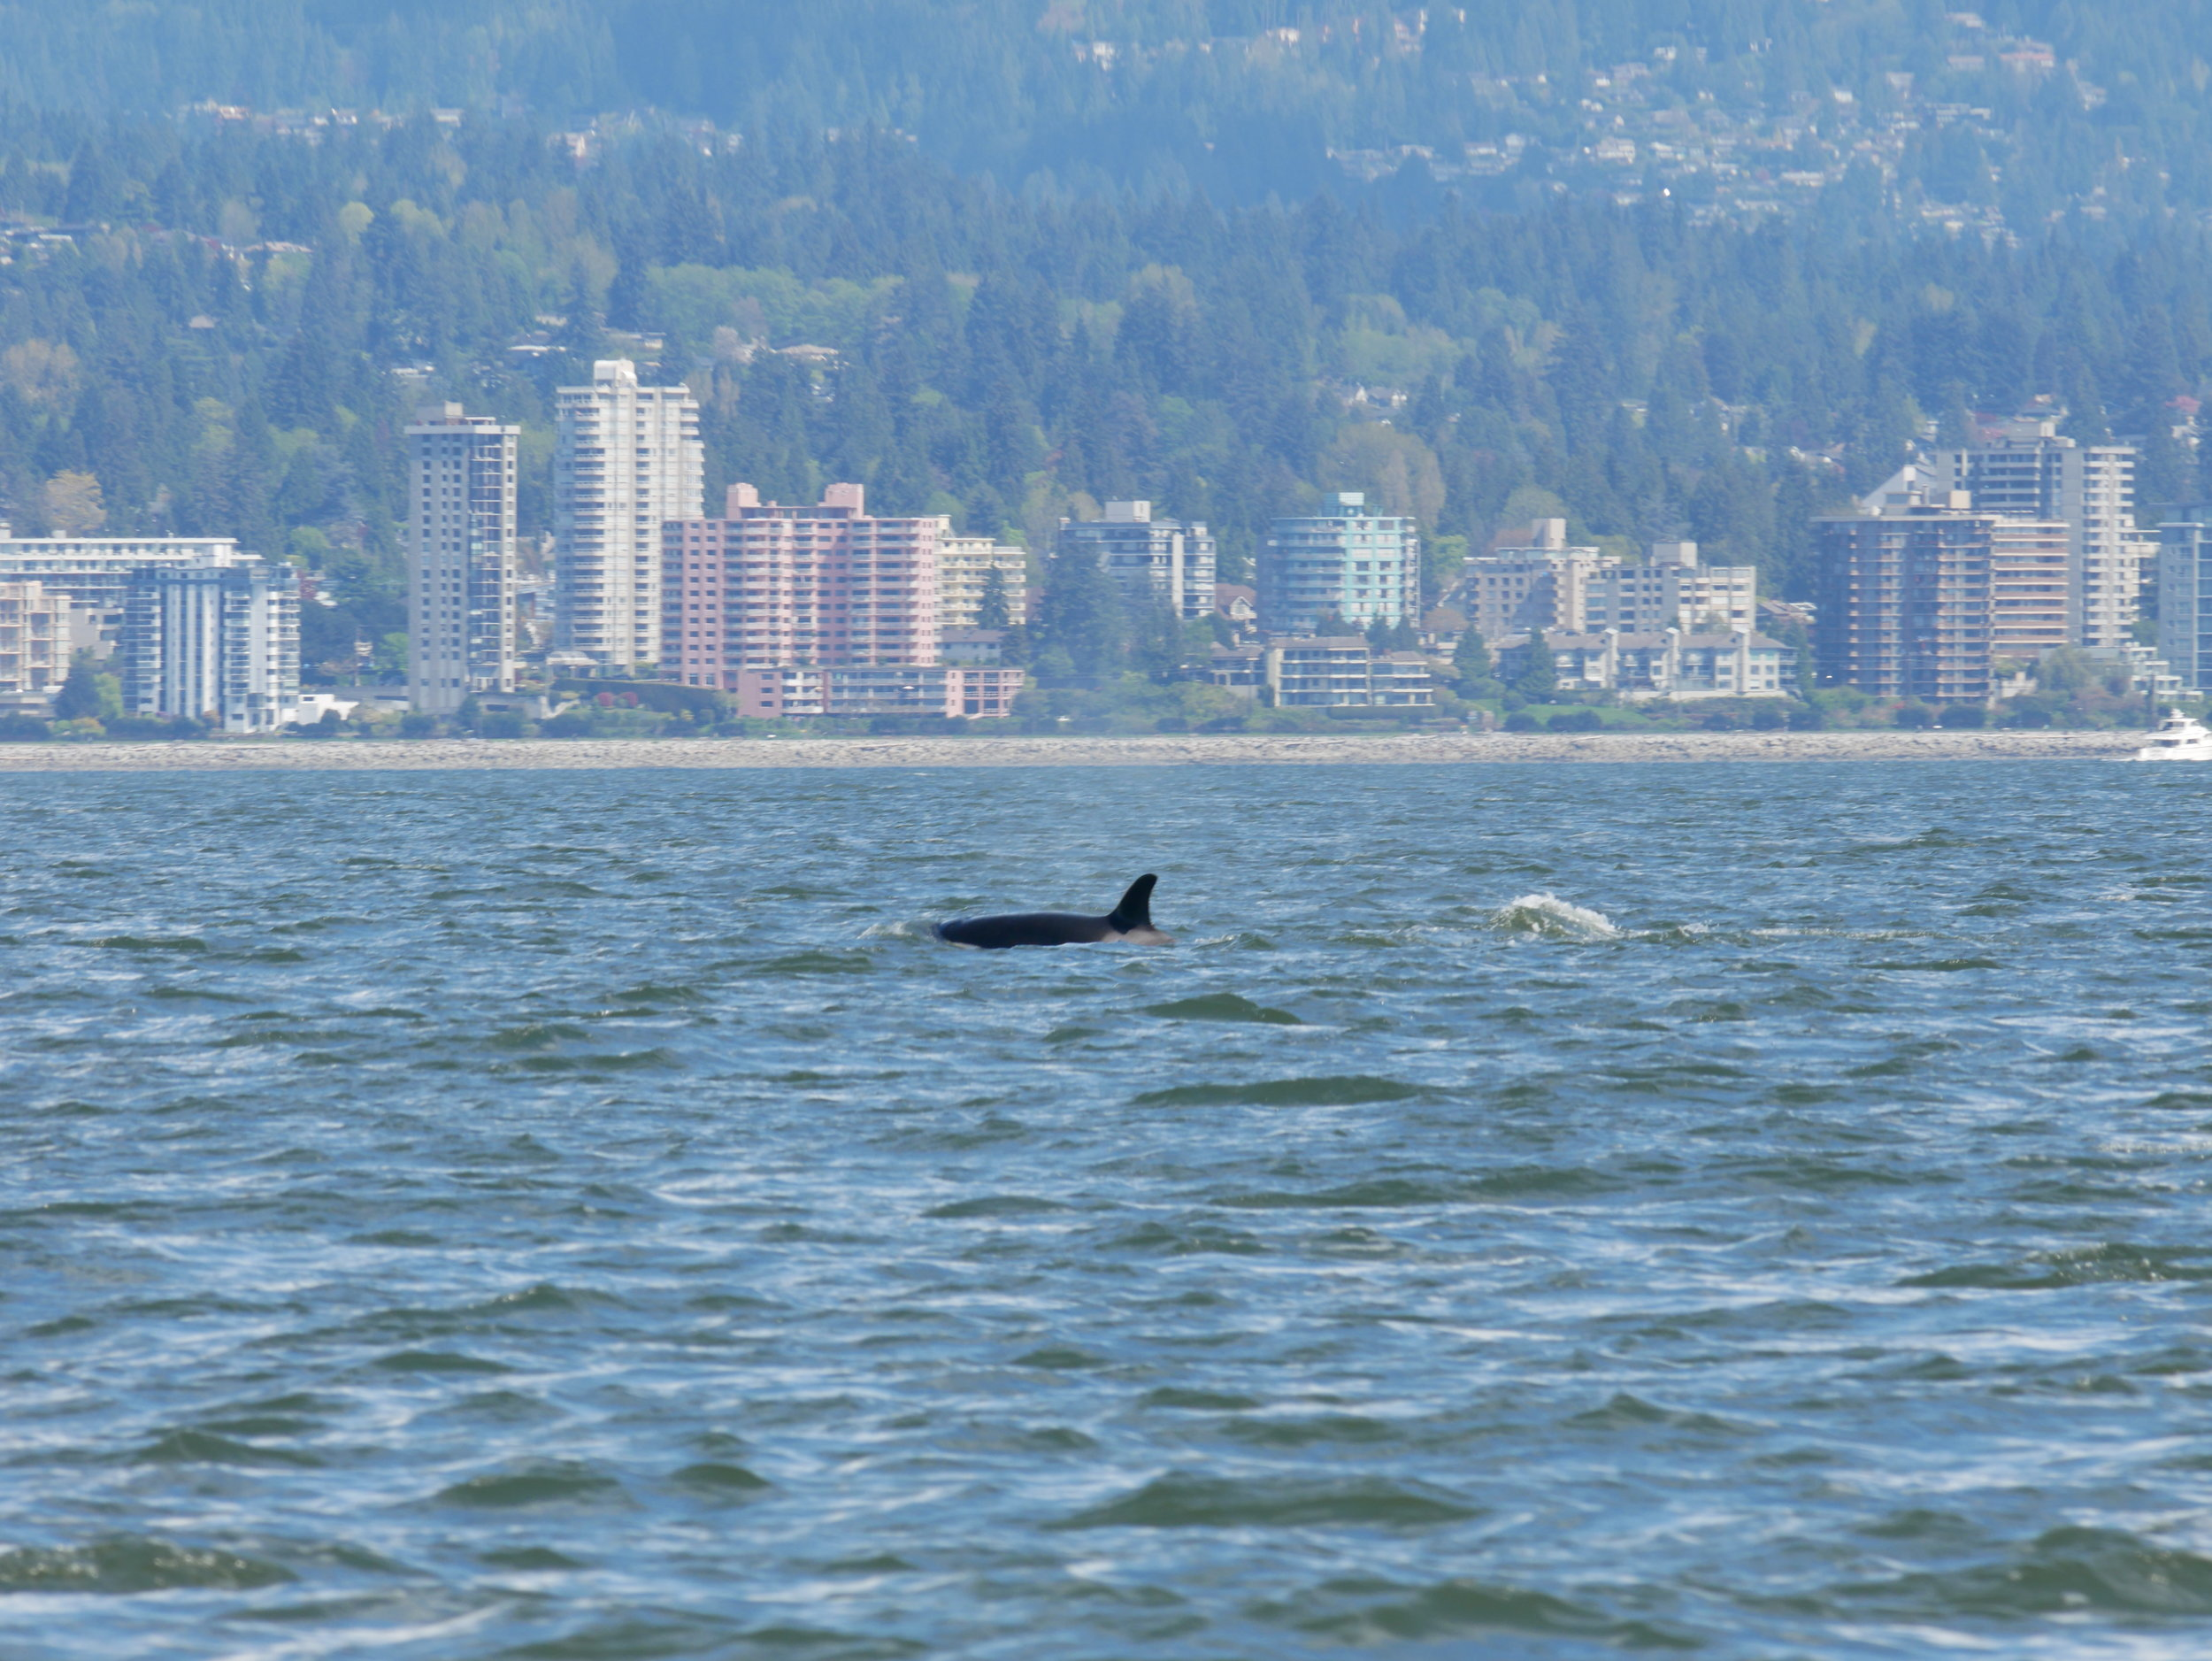 Orca spotted in front of the North Vancouver shoreline! Photo by Jilann Campbell